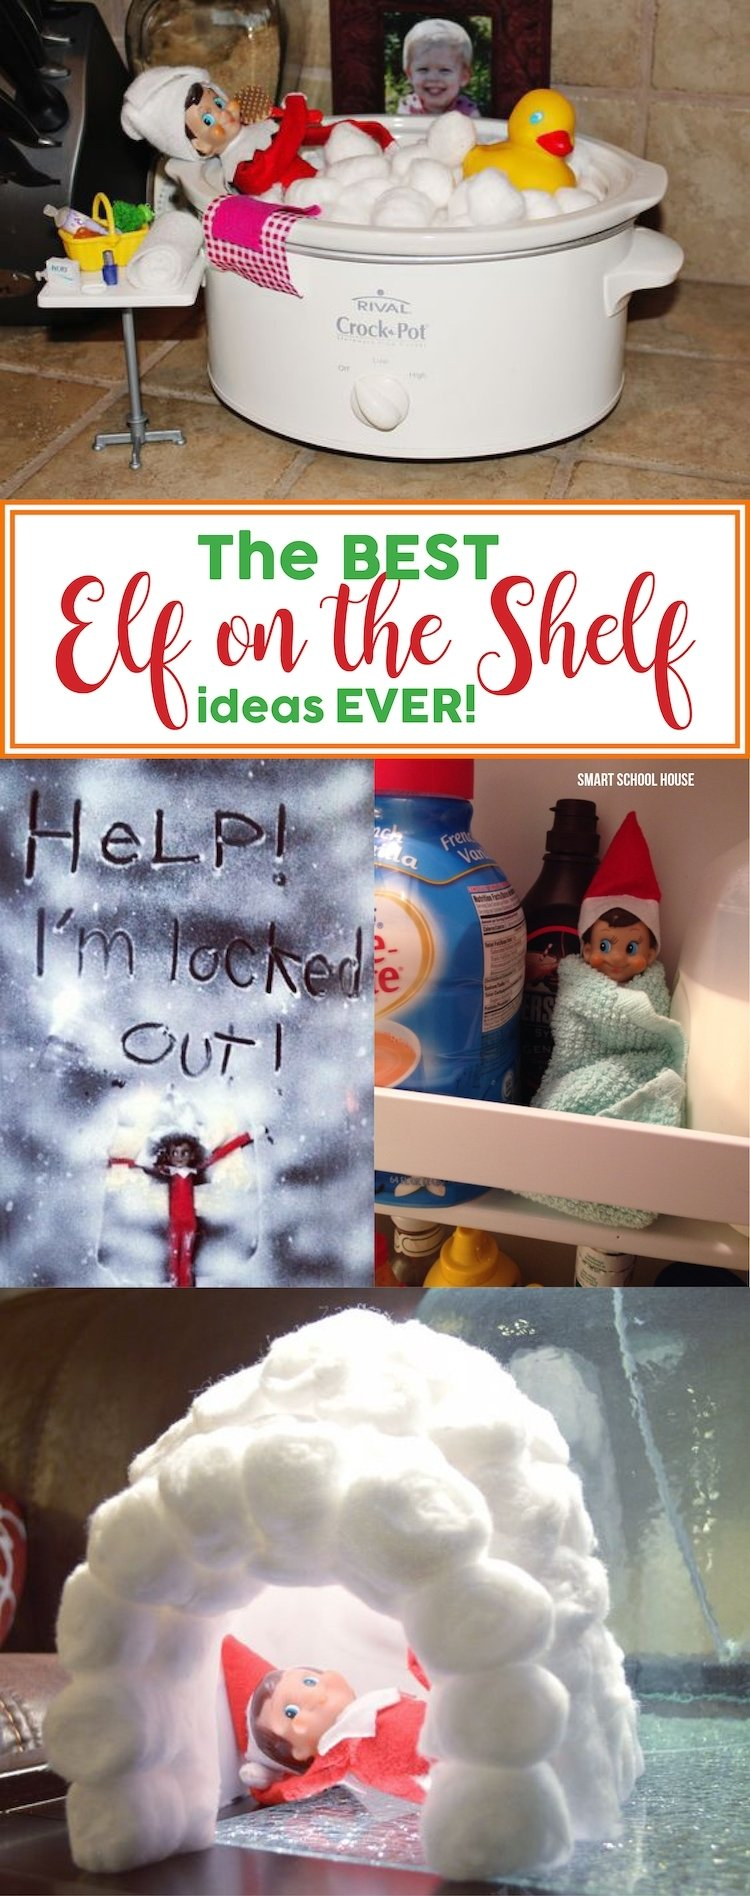 the best elf on the shelf ideas ever - smart school house